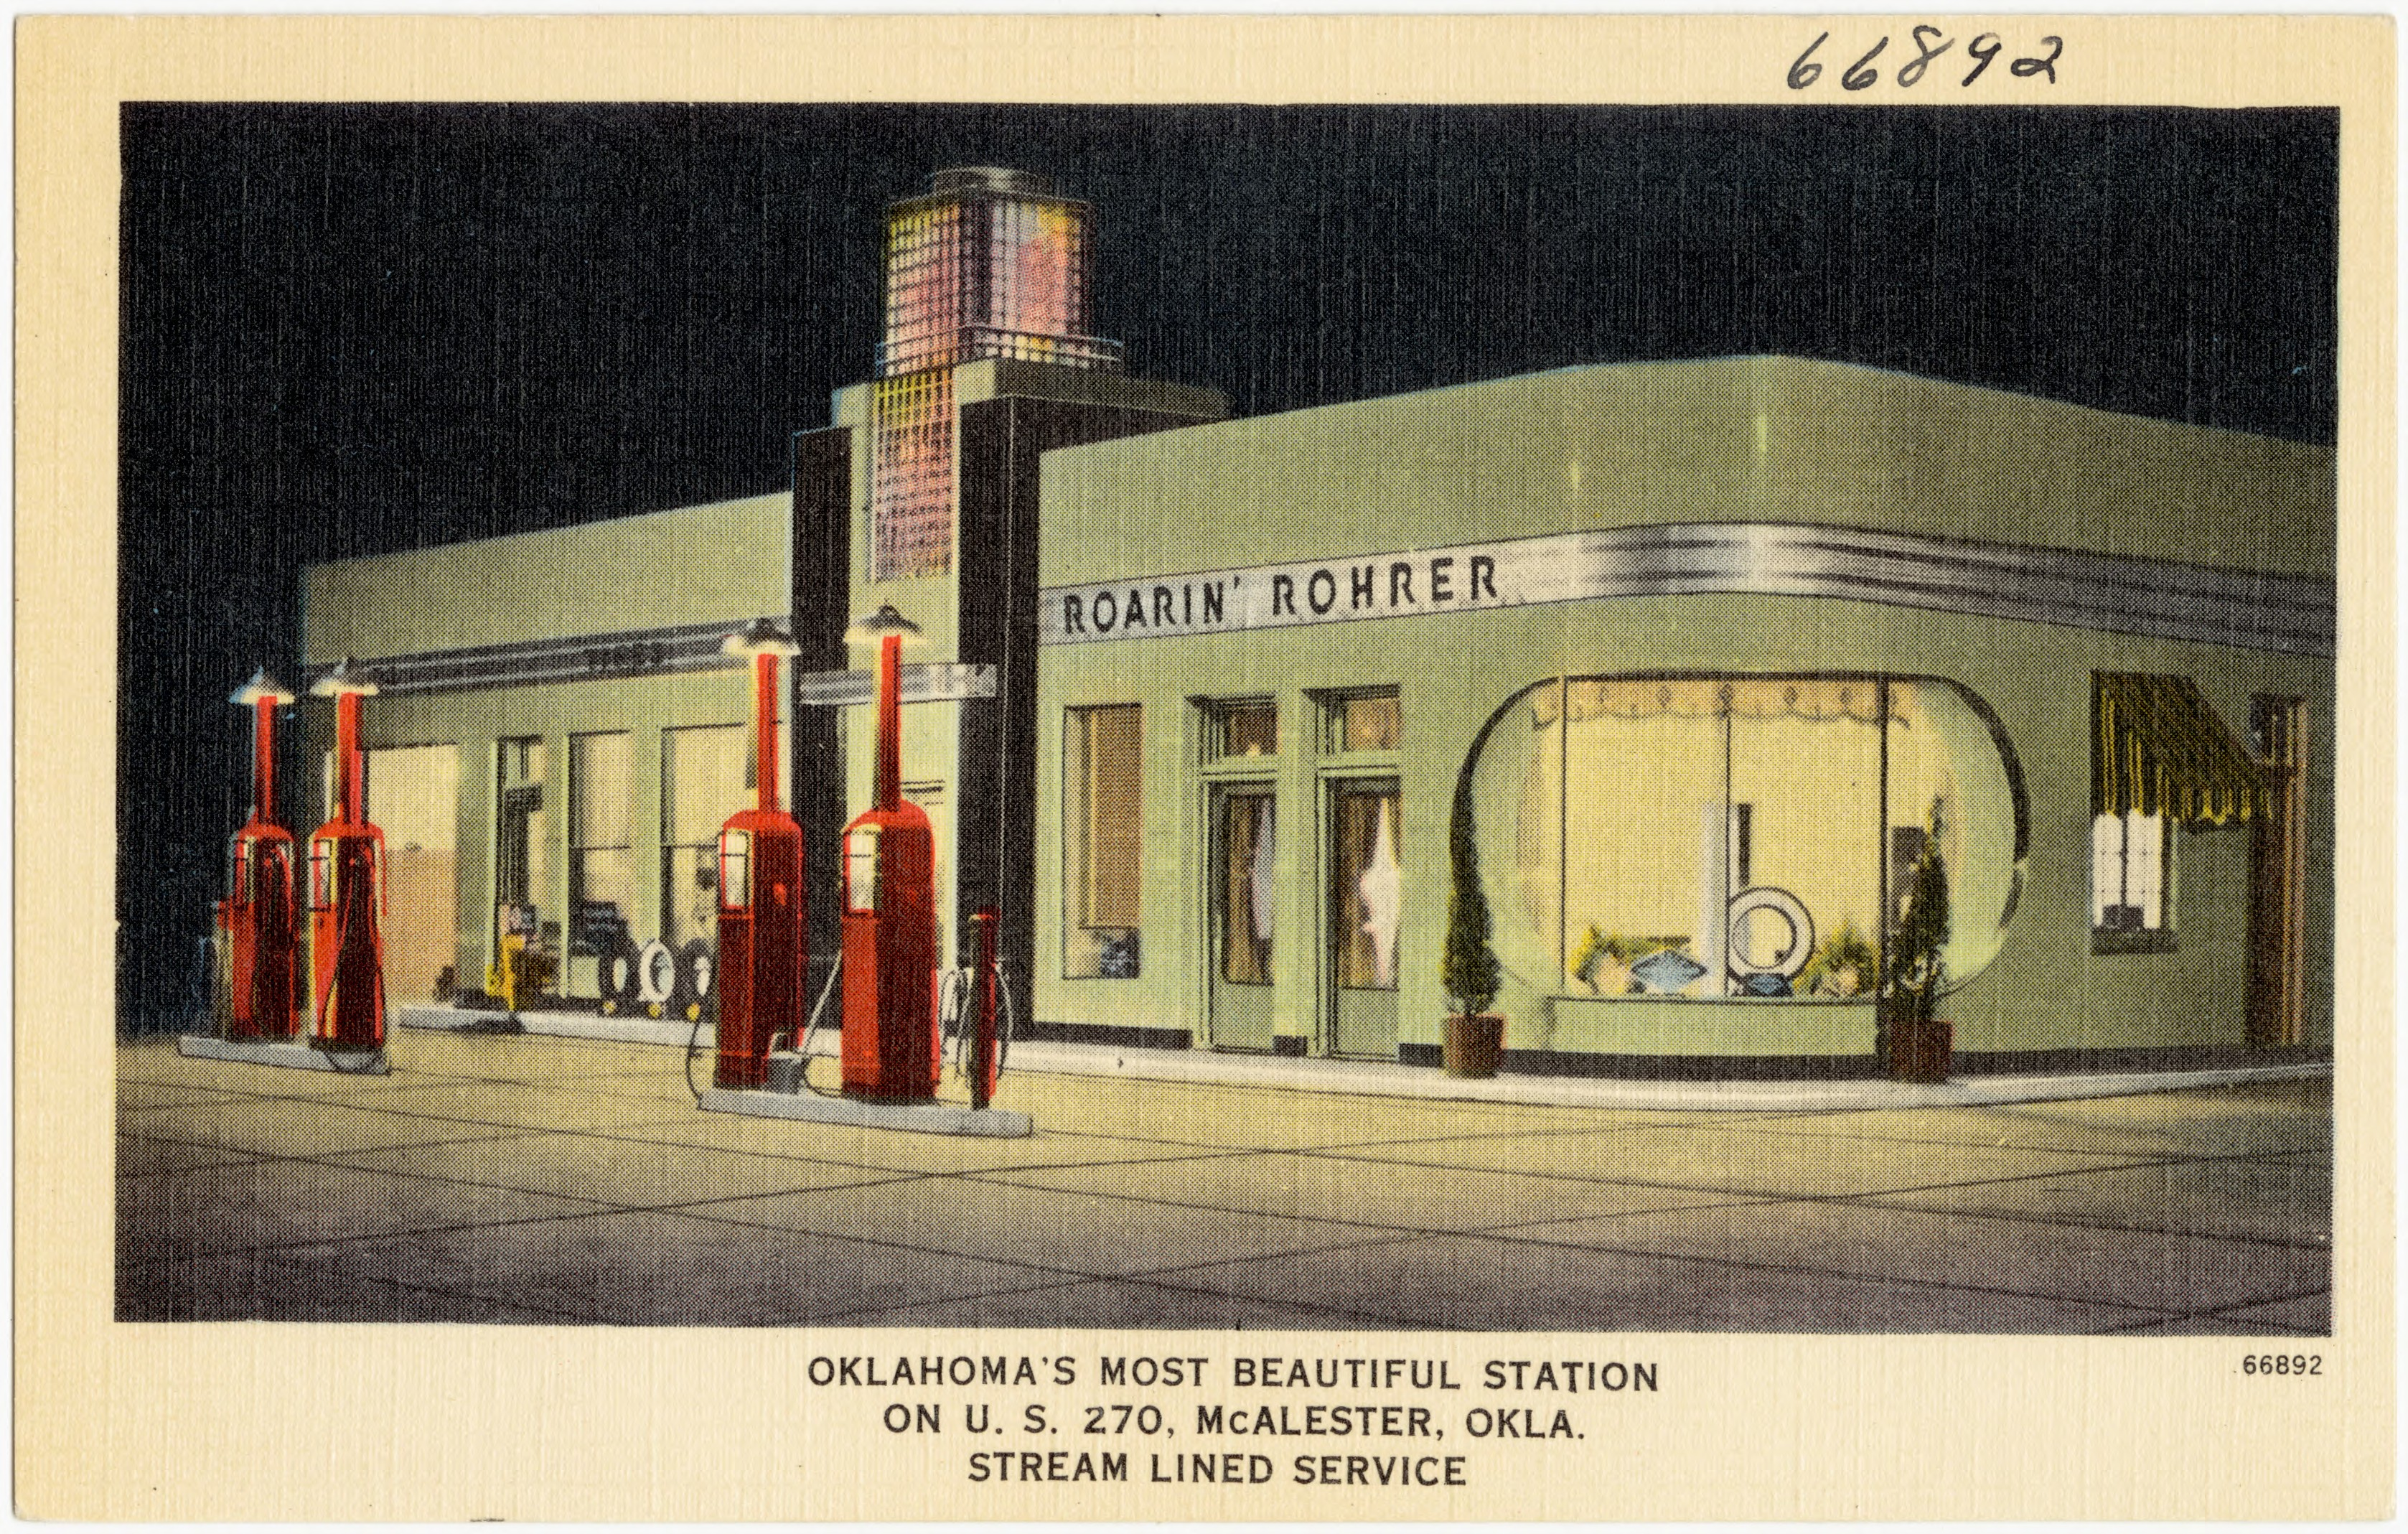 File:Roarin' Rohrer, Oklahoma's most beautiful station on